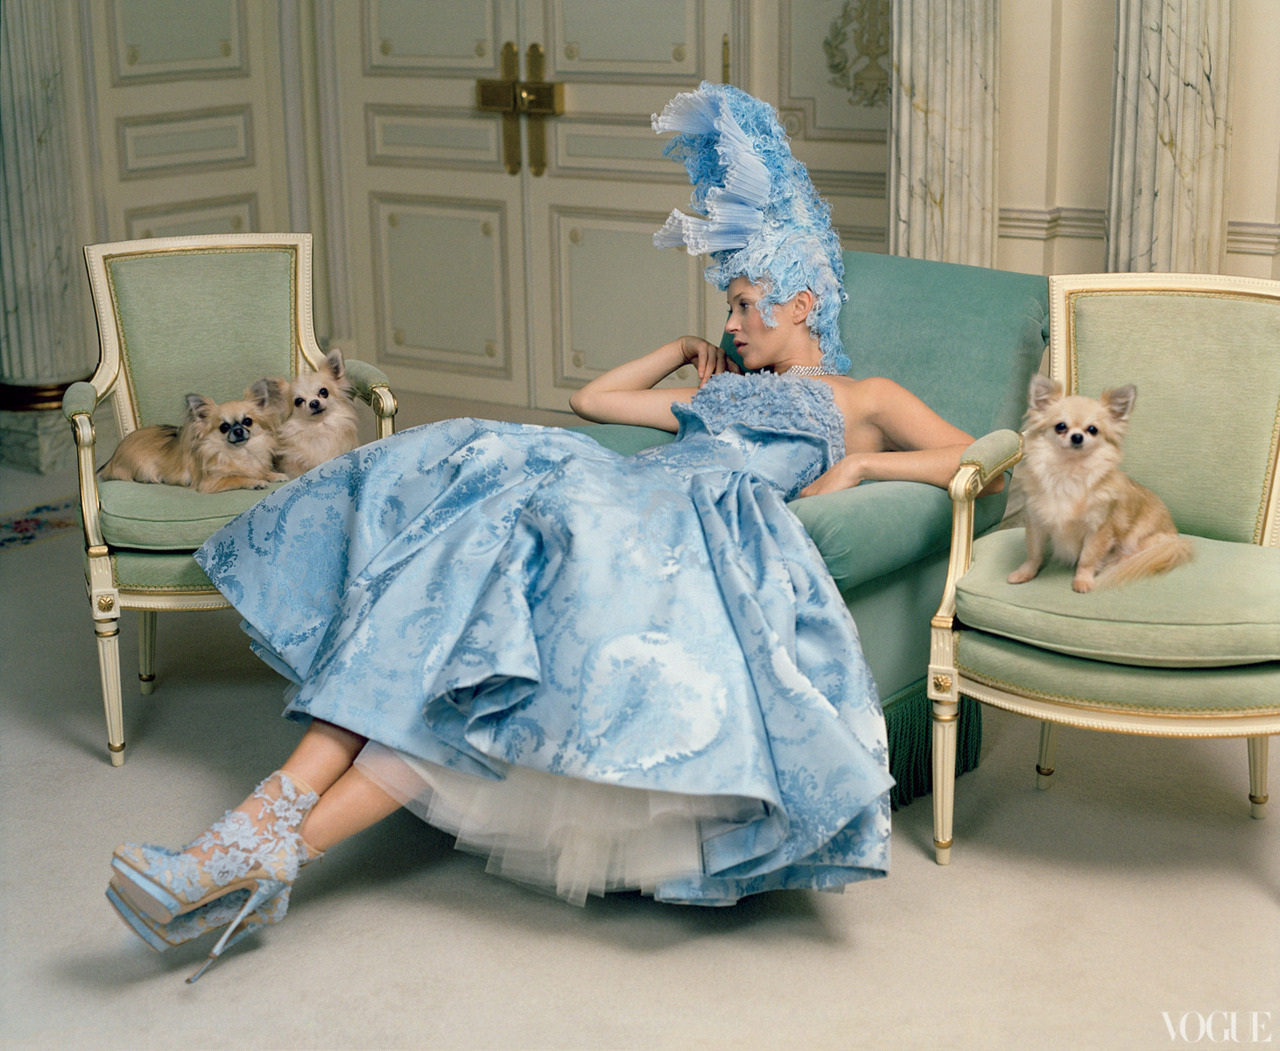 Kate Moss Photographed at the Ritz Paris by Tim Walker for the April Issue of Vogue